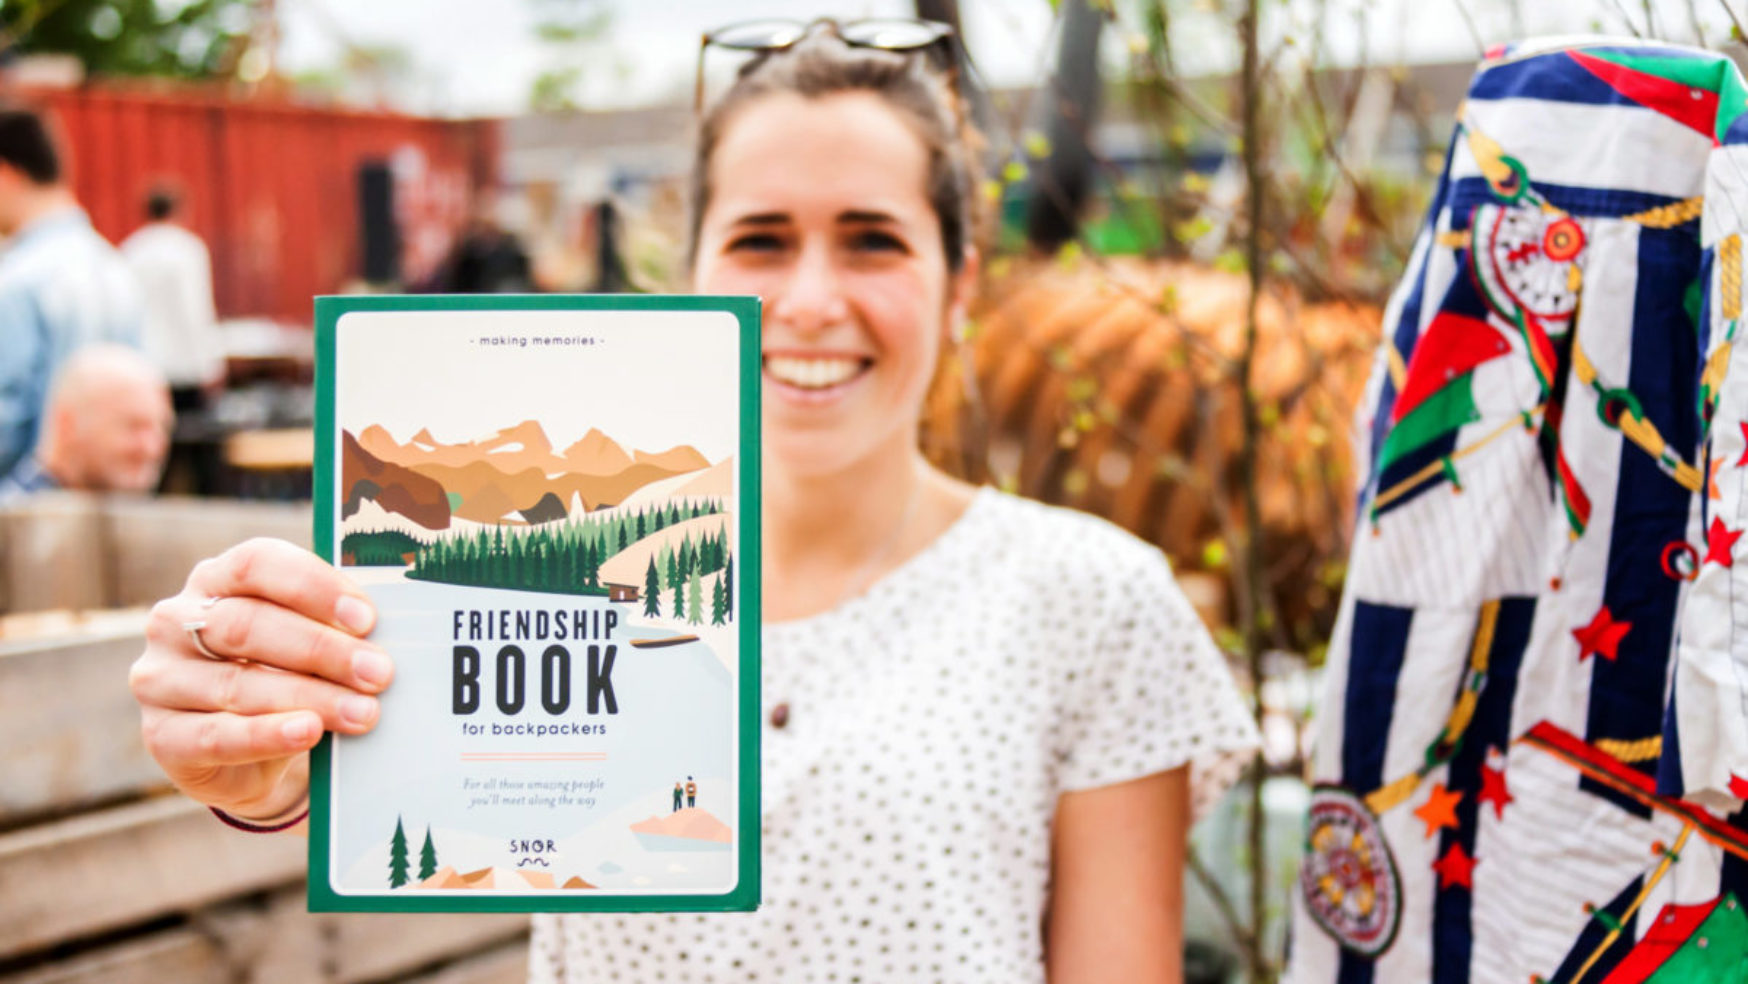 Friendshipbook for Backpackers